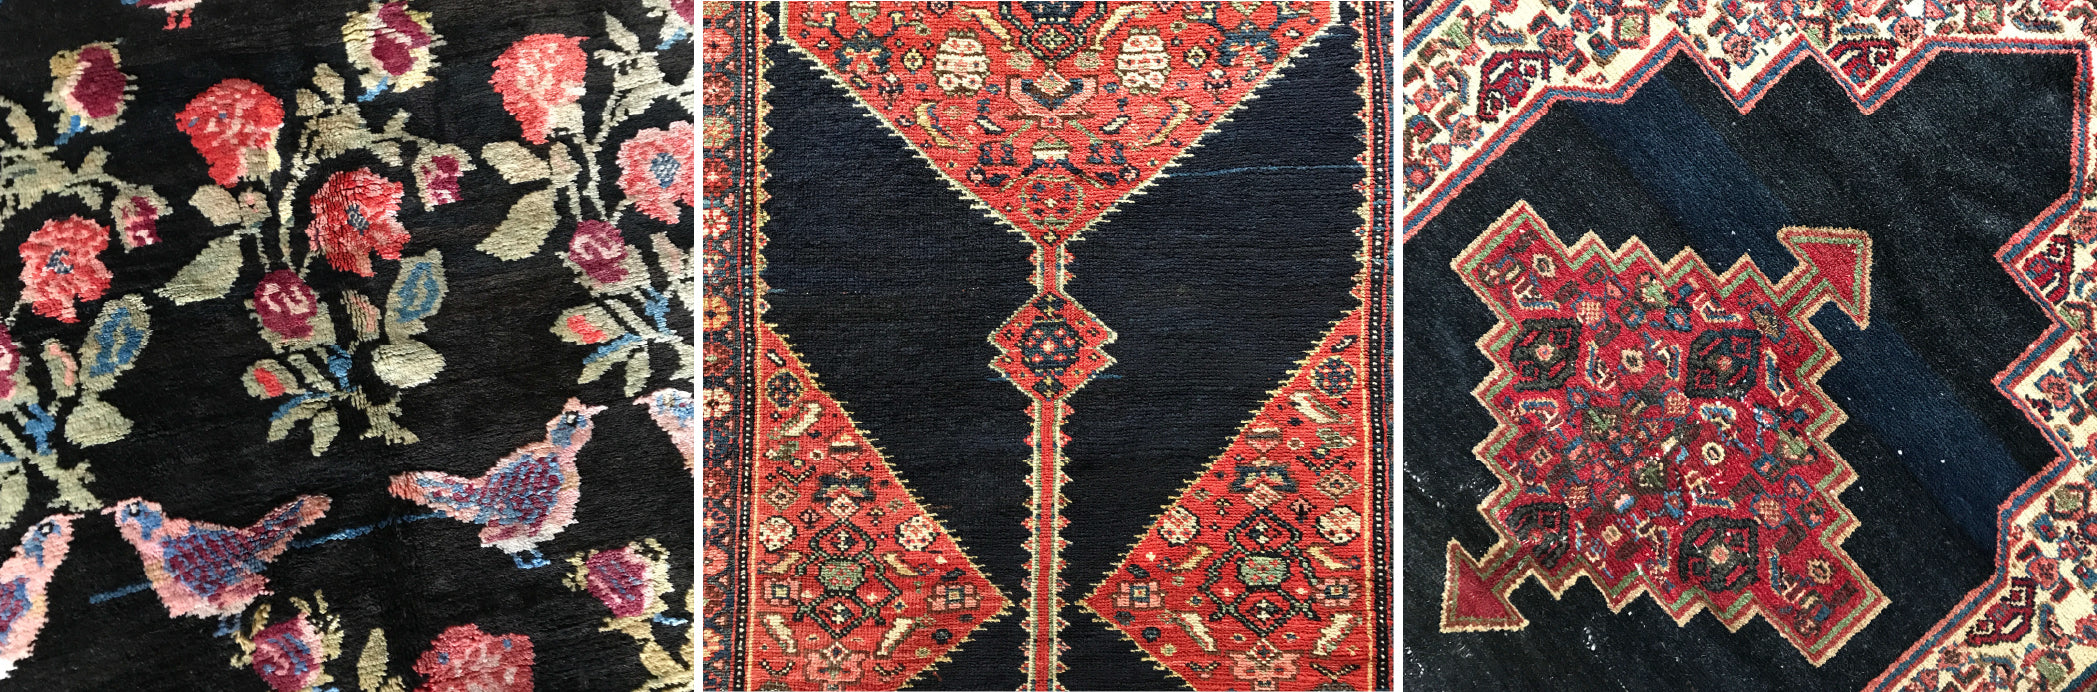 Karabagh, Kurdish and Senneh rugs with examples of deep blue/black surmah